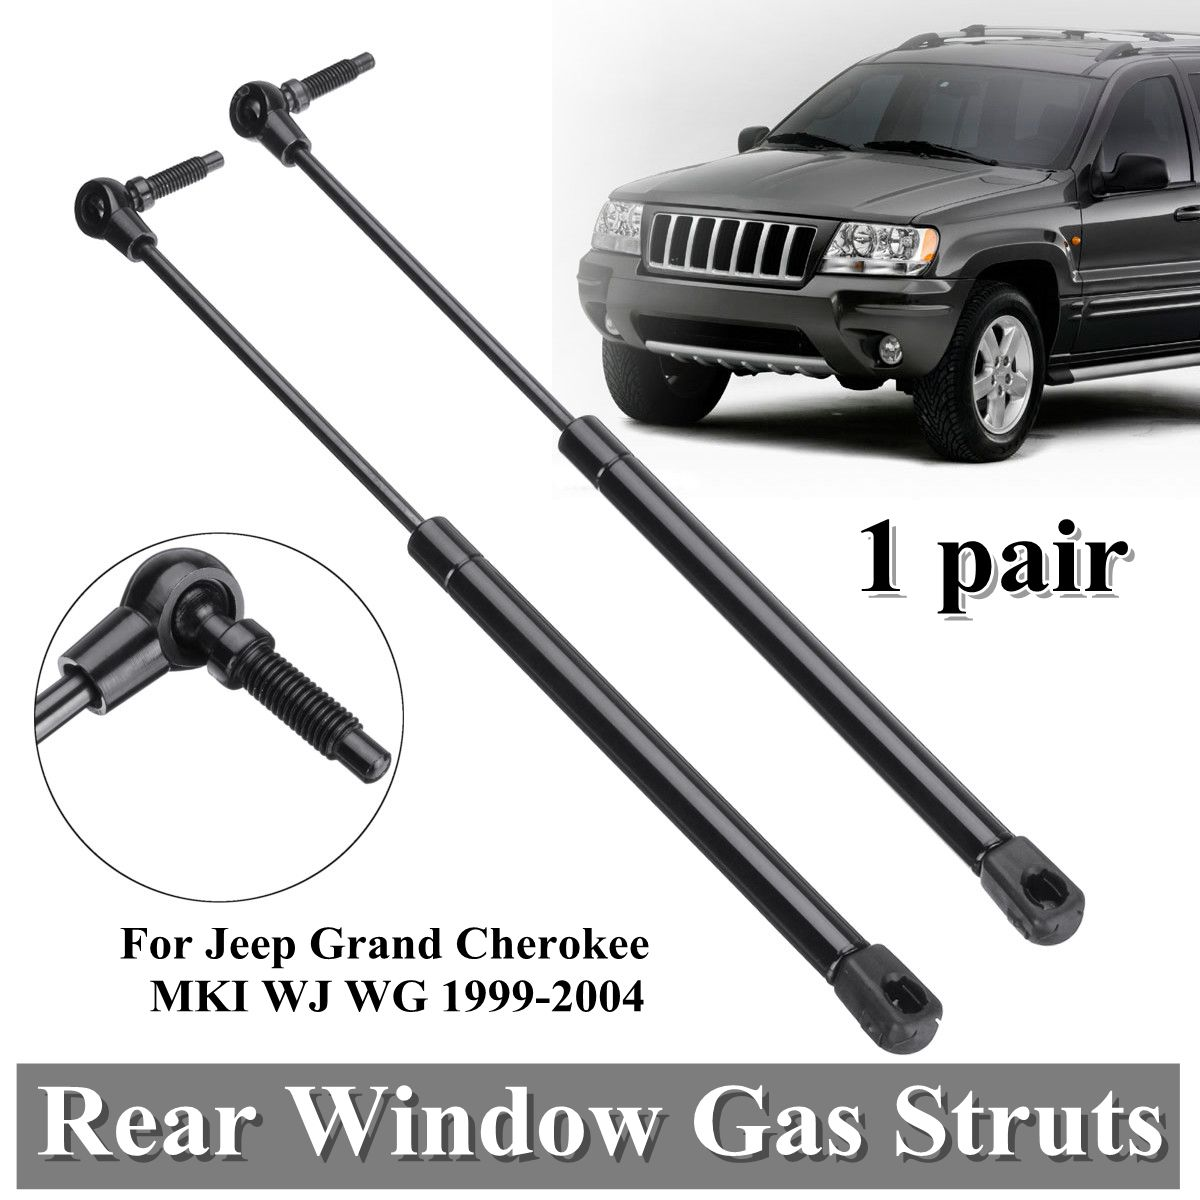 2 Hood Lift Supports for 1999-2004 Jeep Grand Cherokee Qty